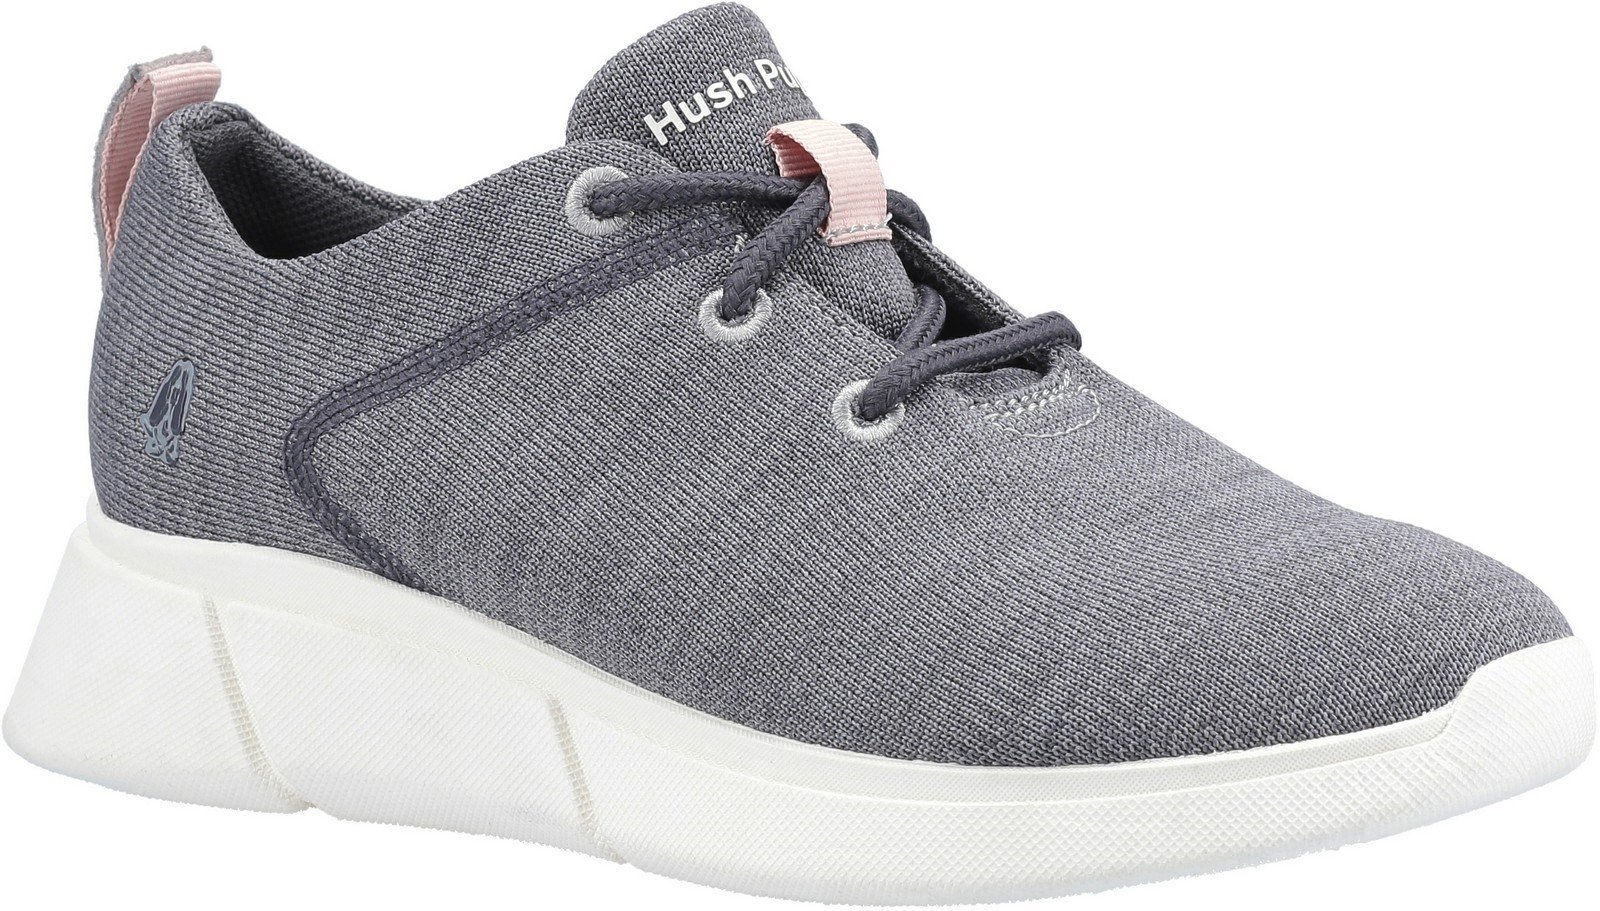 Hush Puppies Women's Makenna Lace Up Shoe Various Colours 30234 - Grey 3